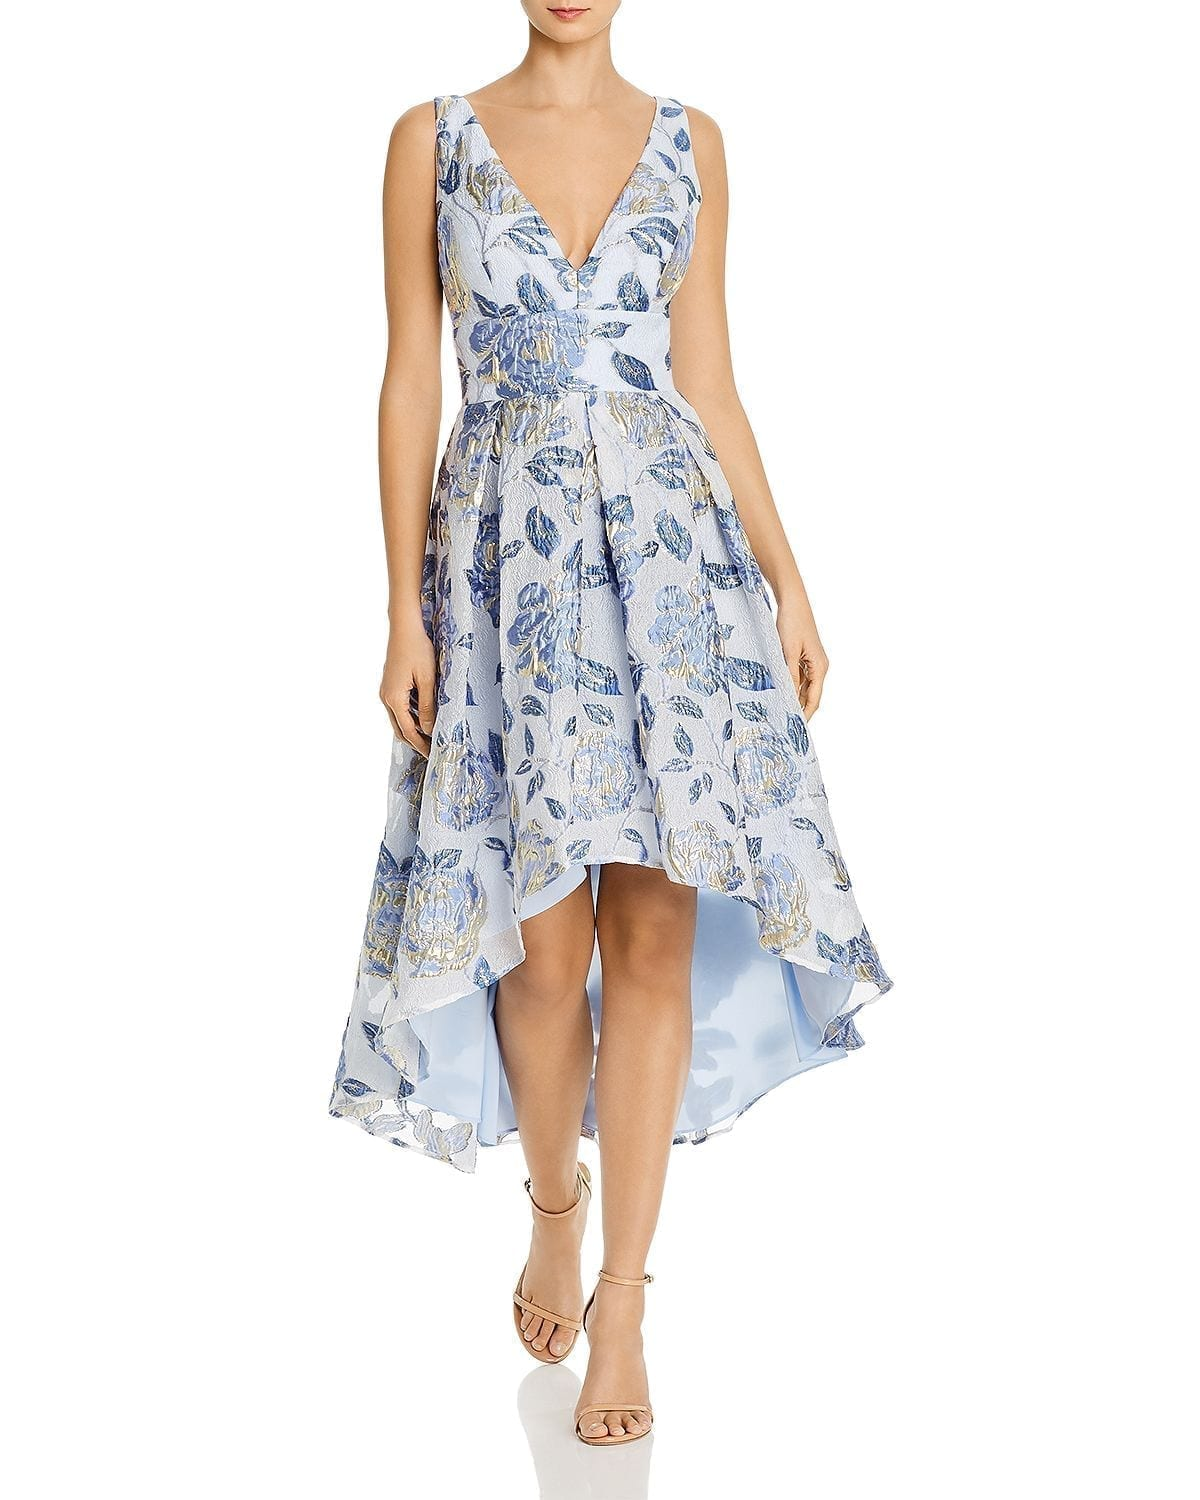 ELIZA J Metallic Floral High Low Dress